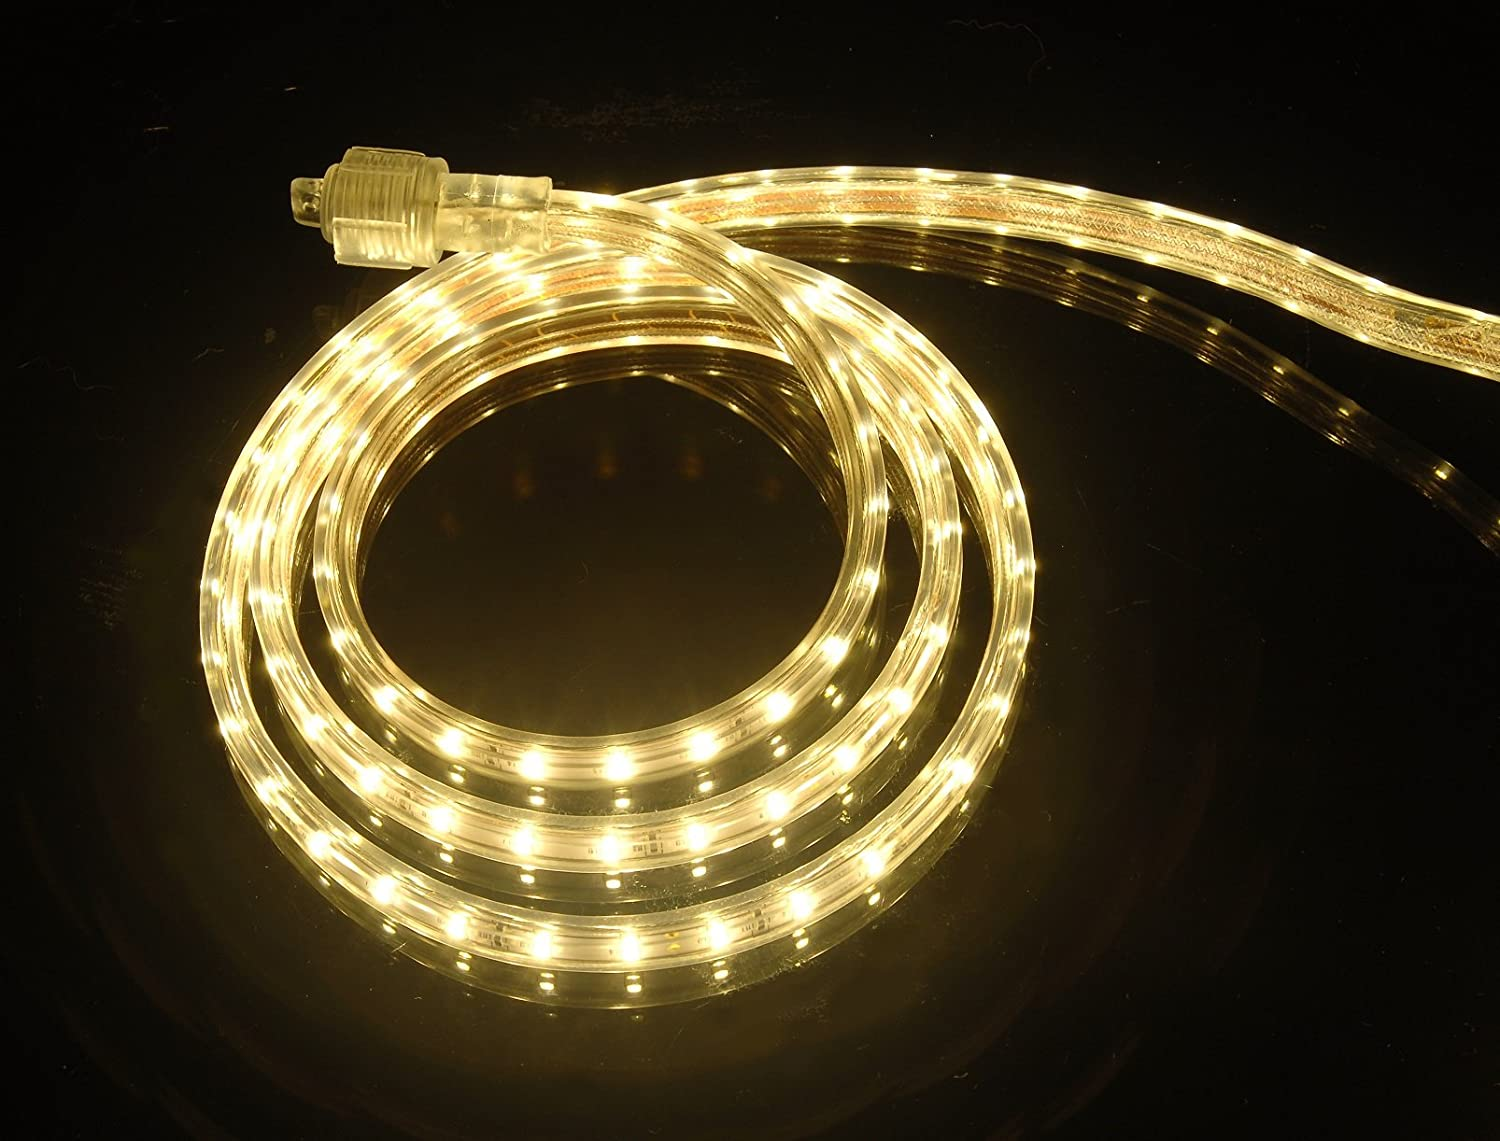 10 Clear Led Warm White 3mm Wired 30cm with resistance 12v with Cable A1B4